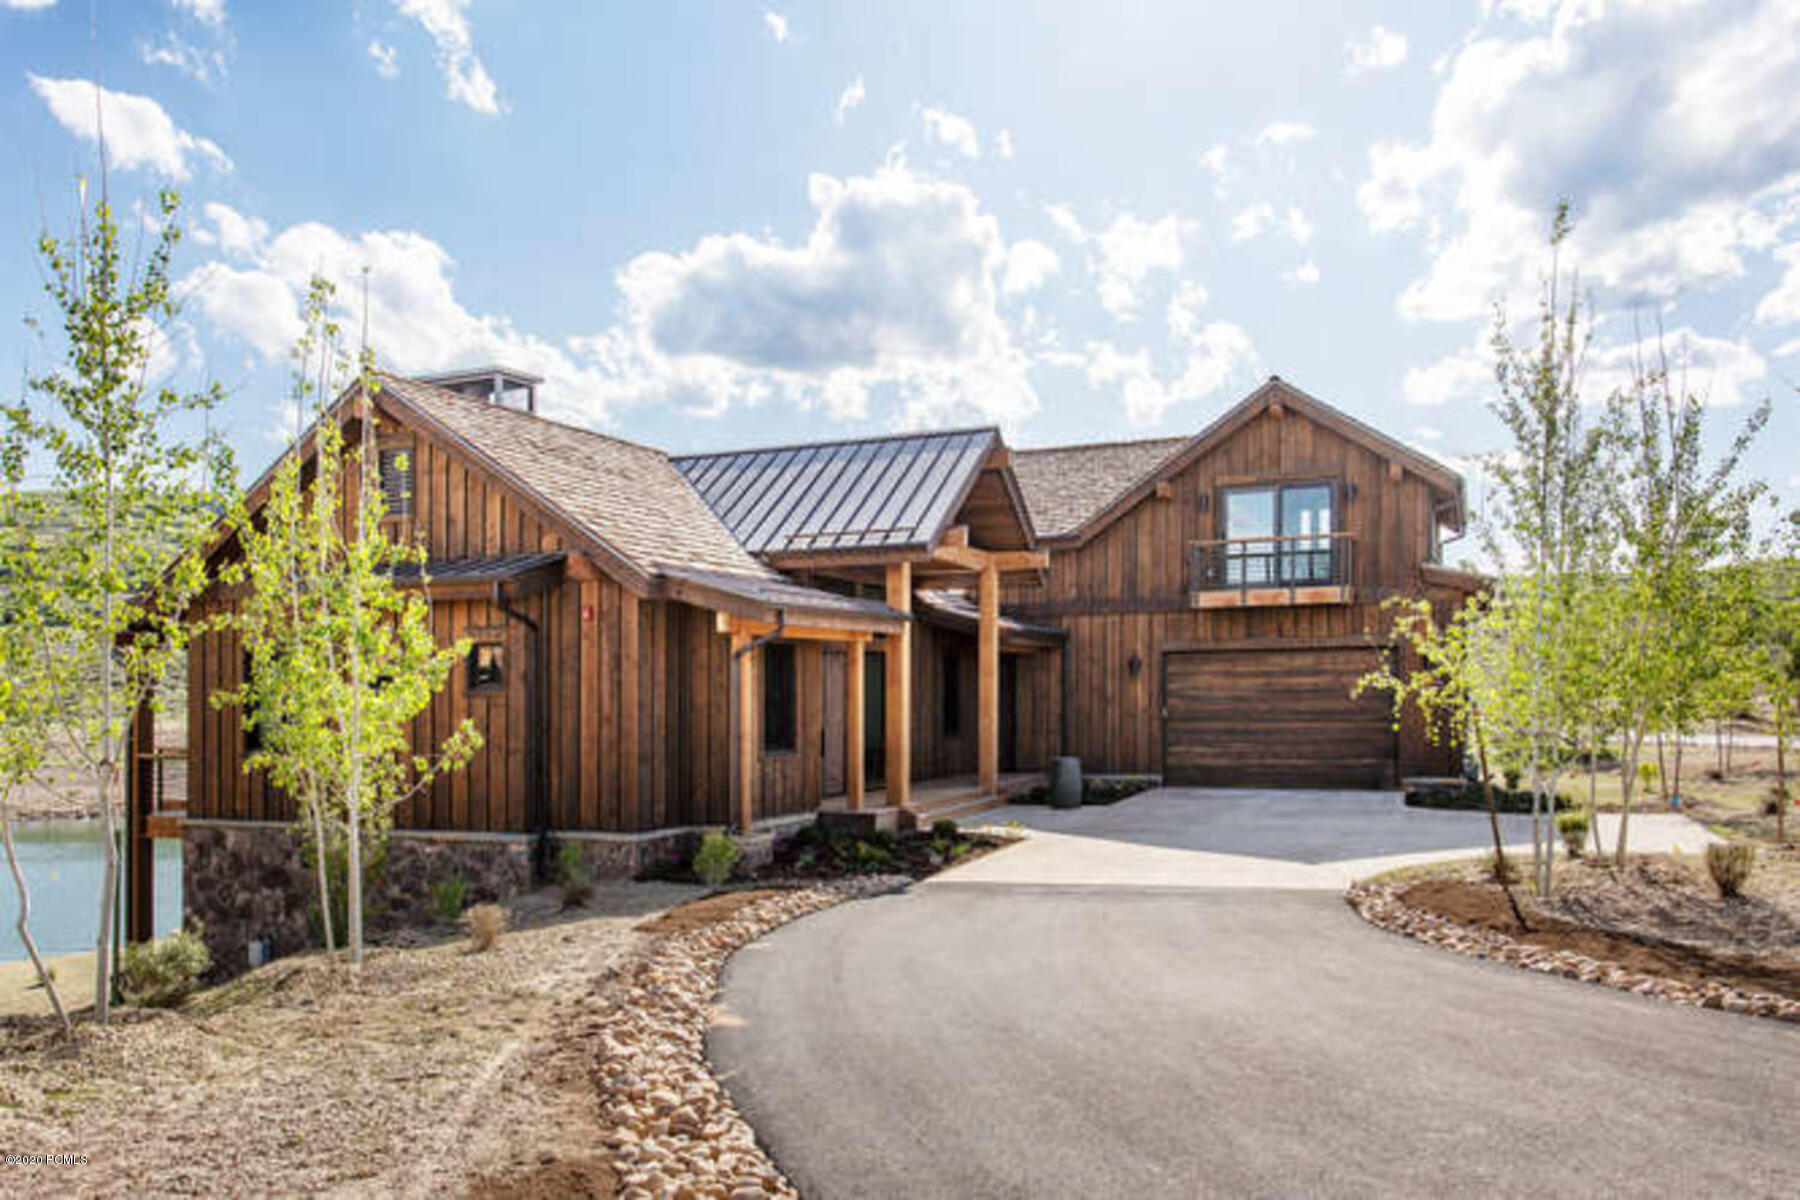 6385 Whispering Way #379, Heber City, Utah 84032, 5 Bedrooms Bedrooms, ,6 BathroomsBathrooms,Single Family,For Sale,Whispering Way #379,12003880